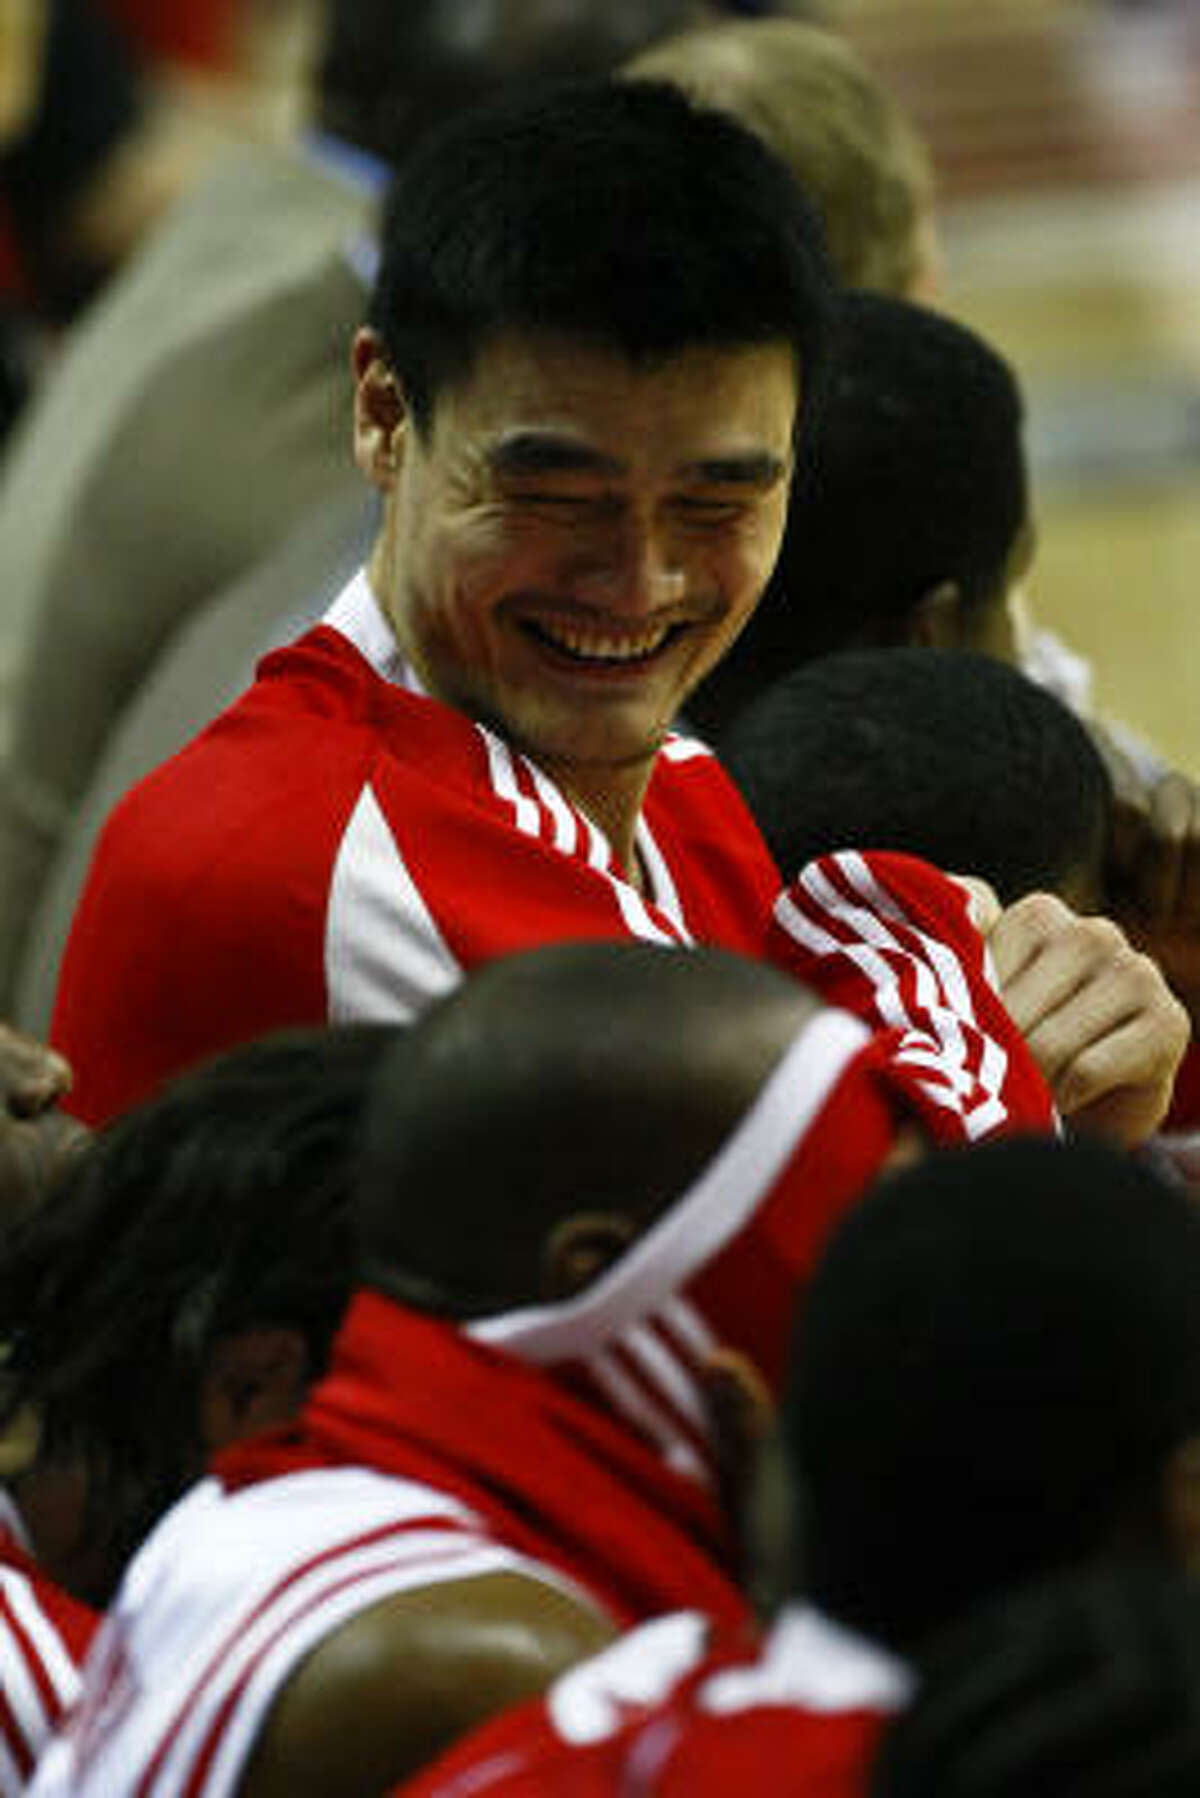 Rockets center Yao Ming jokes with teammates. Yao scored a game-high 24 points to go along with 17 rebounds against the Grizzlies.